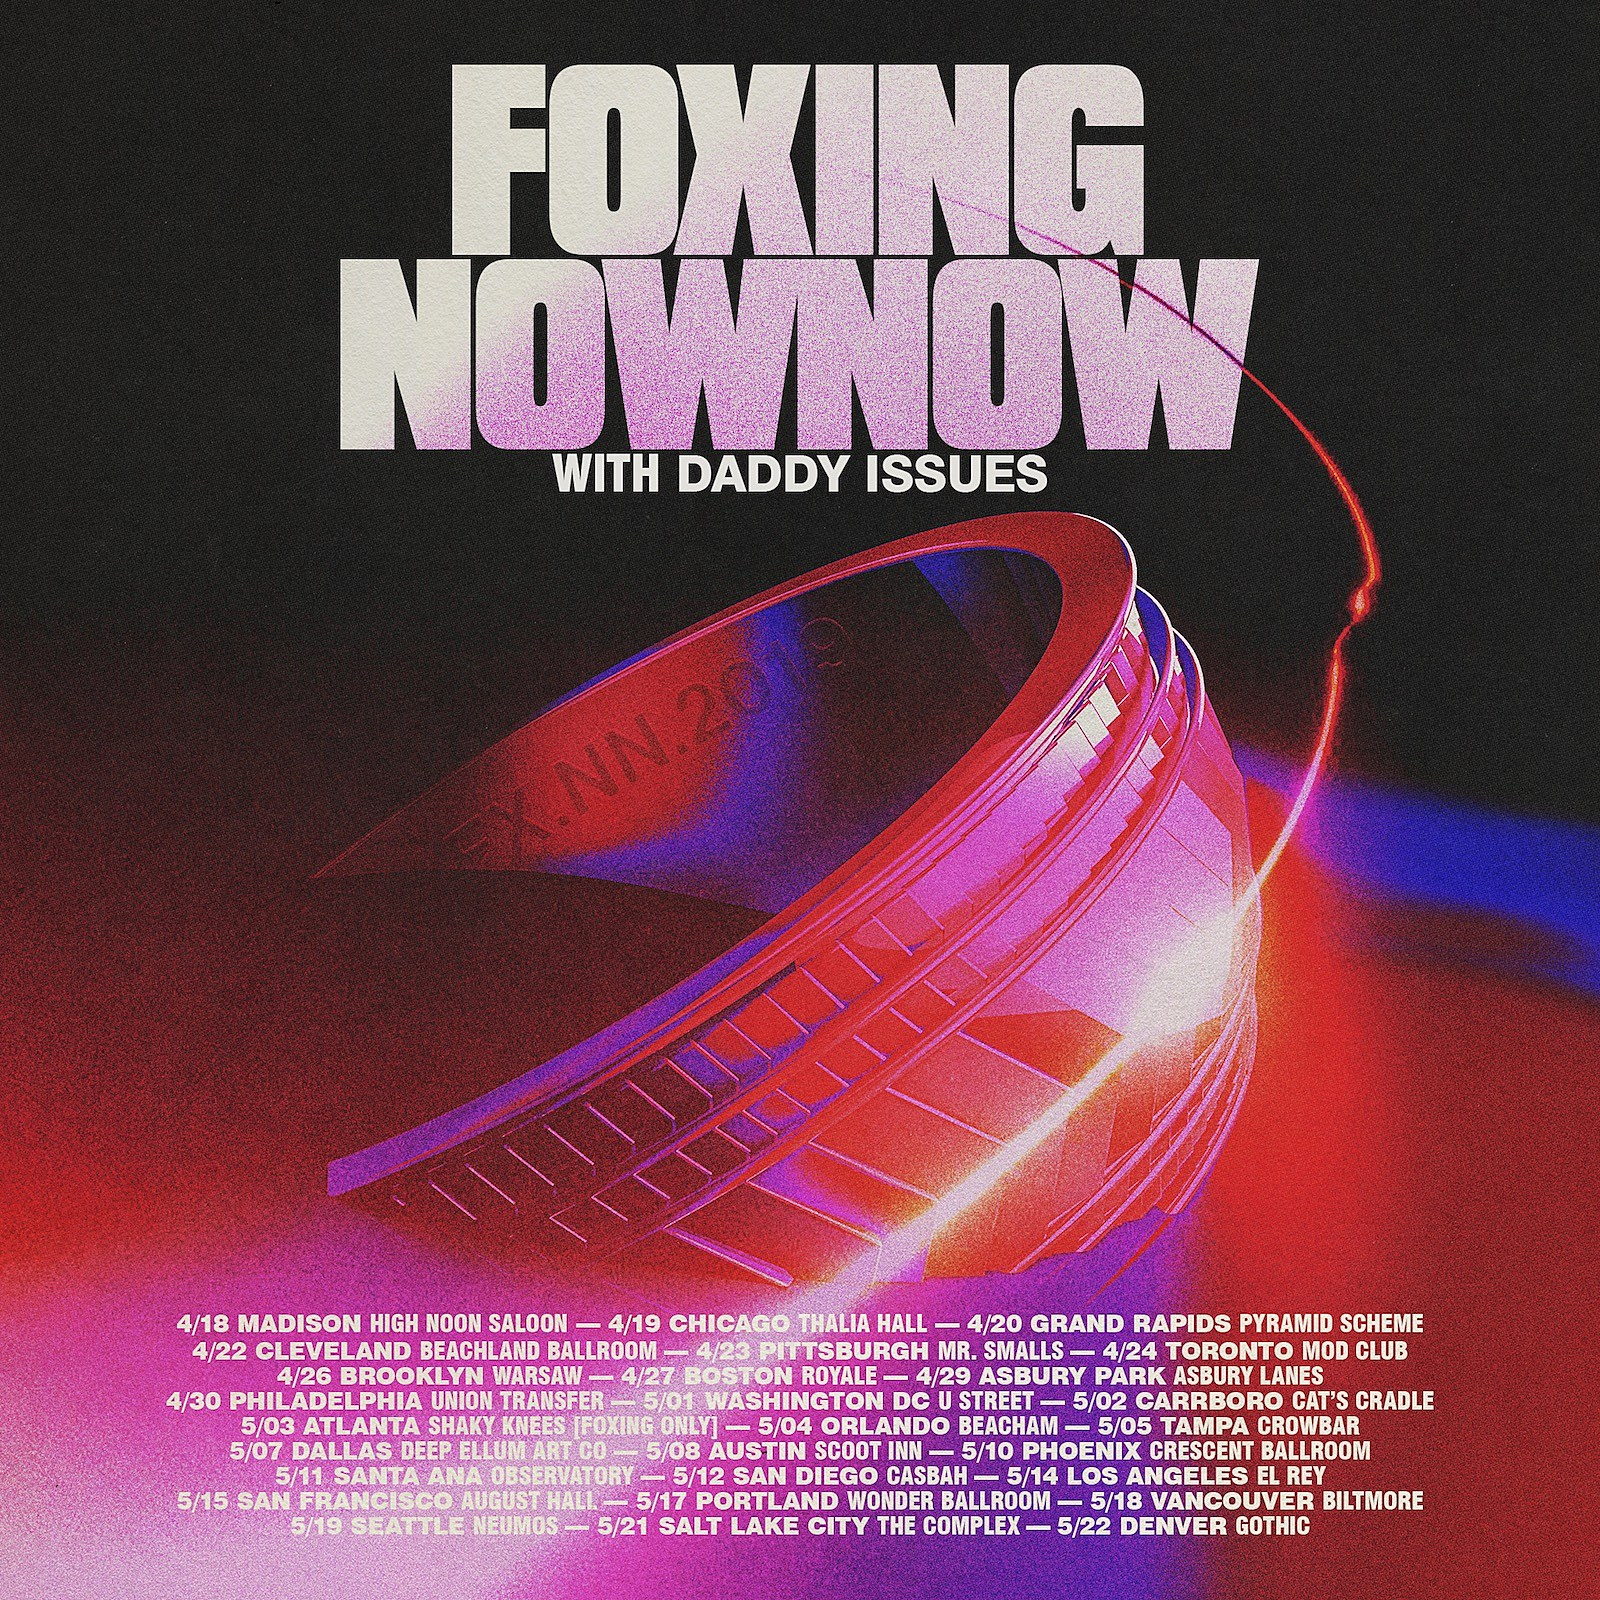 Foxing Now Now Daddy Issues Tour